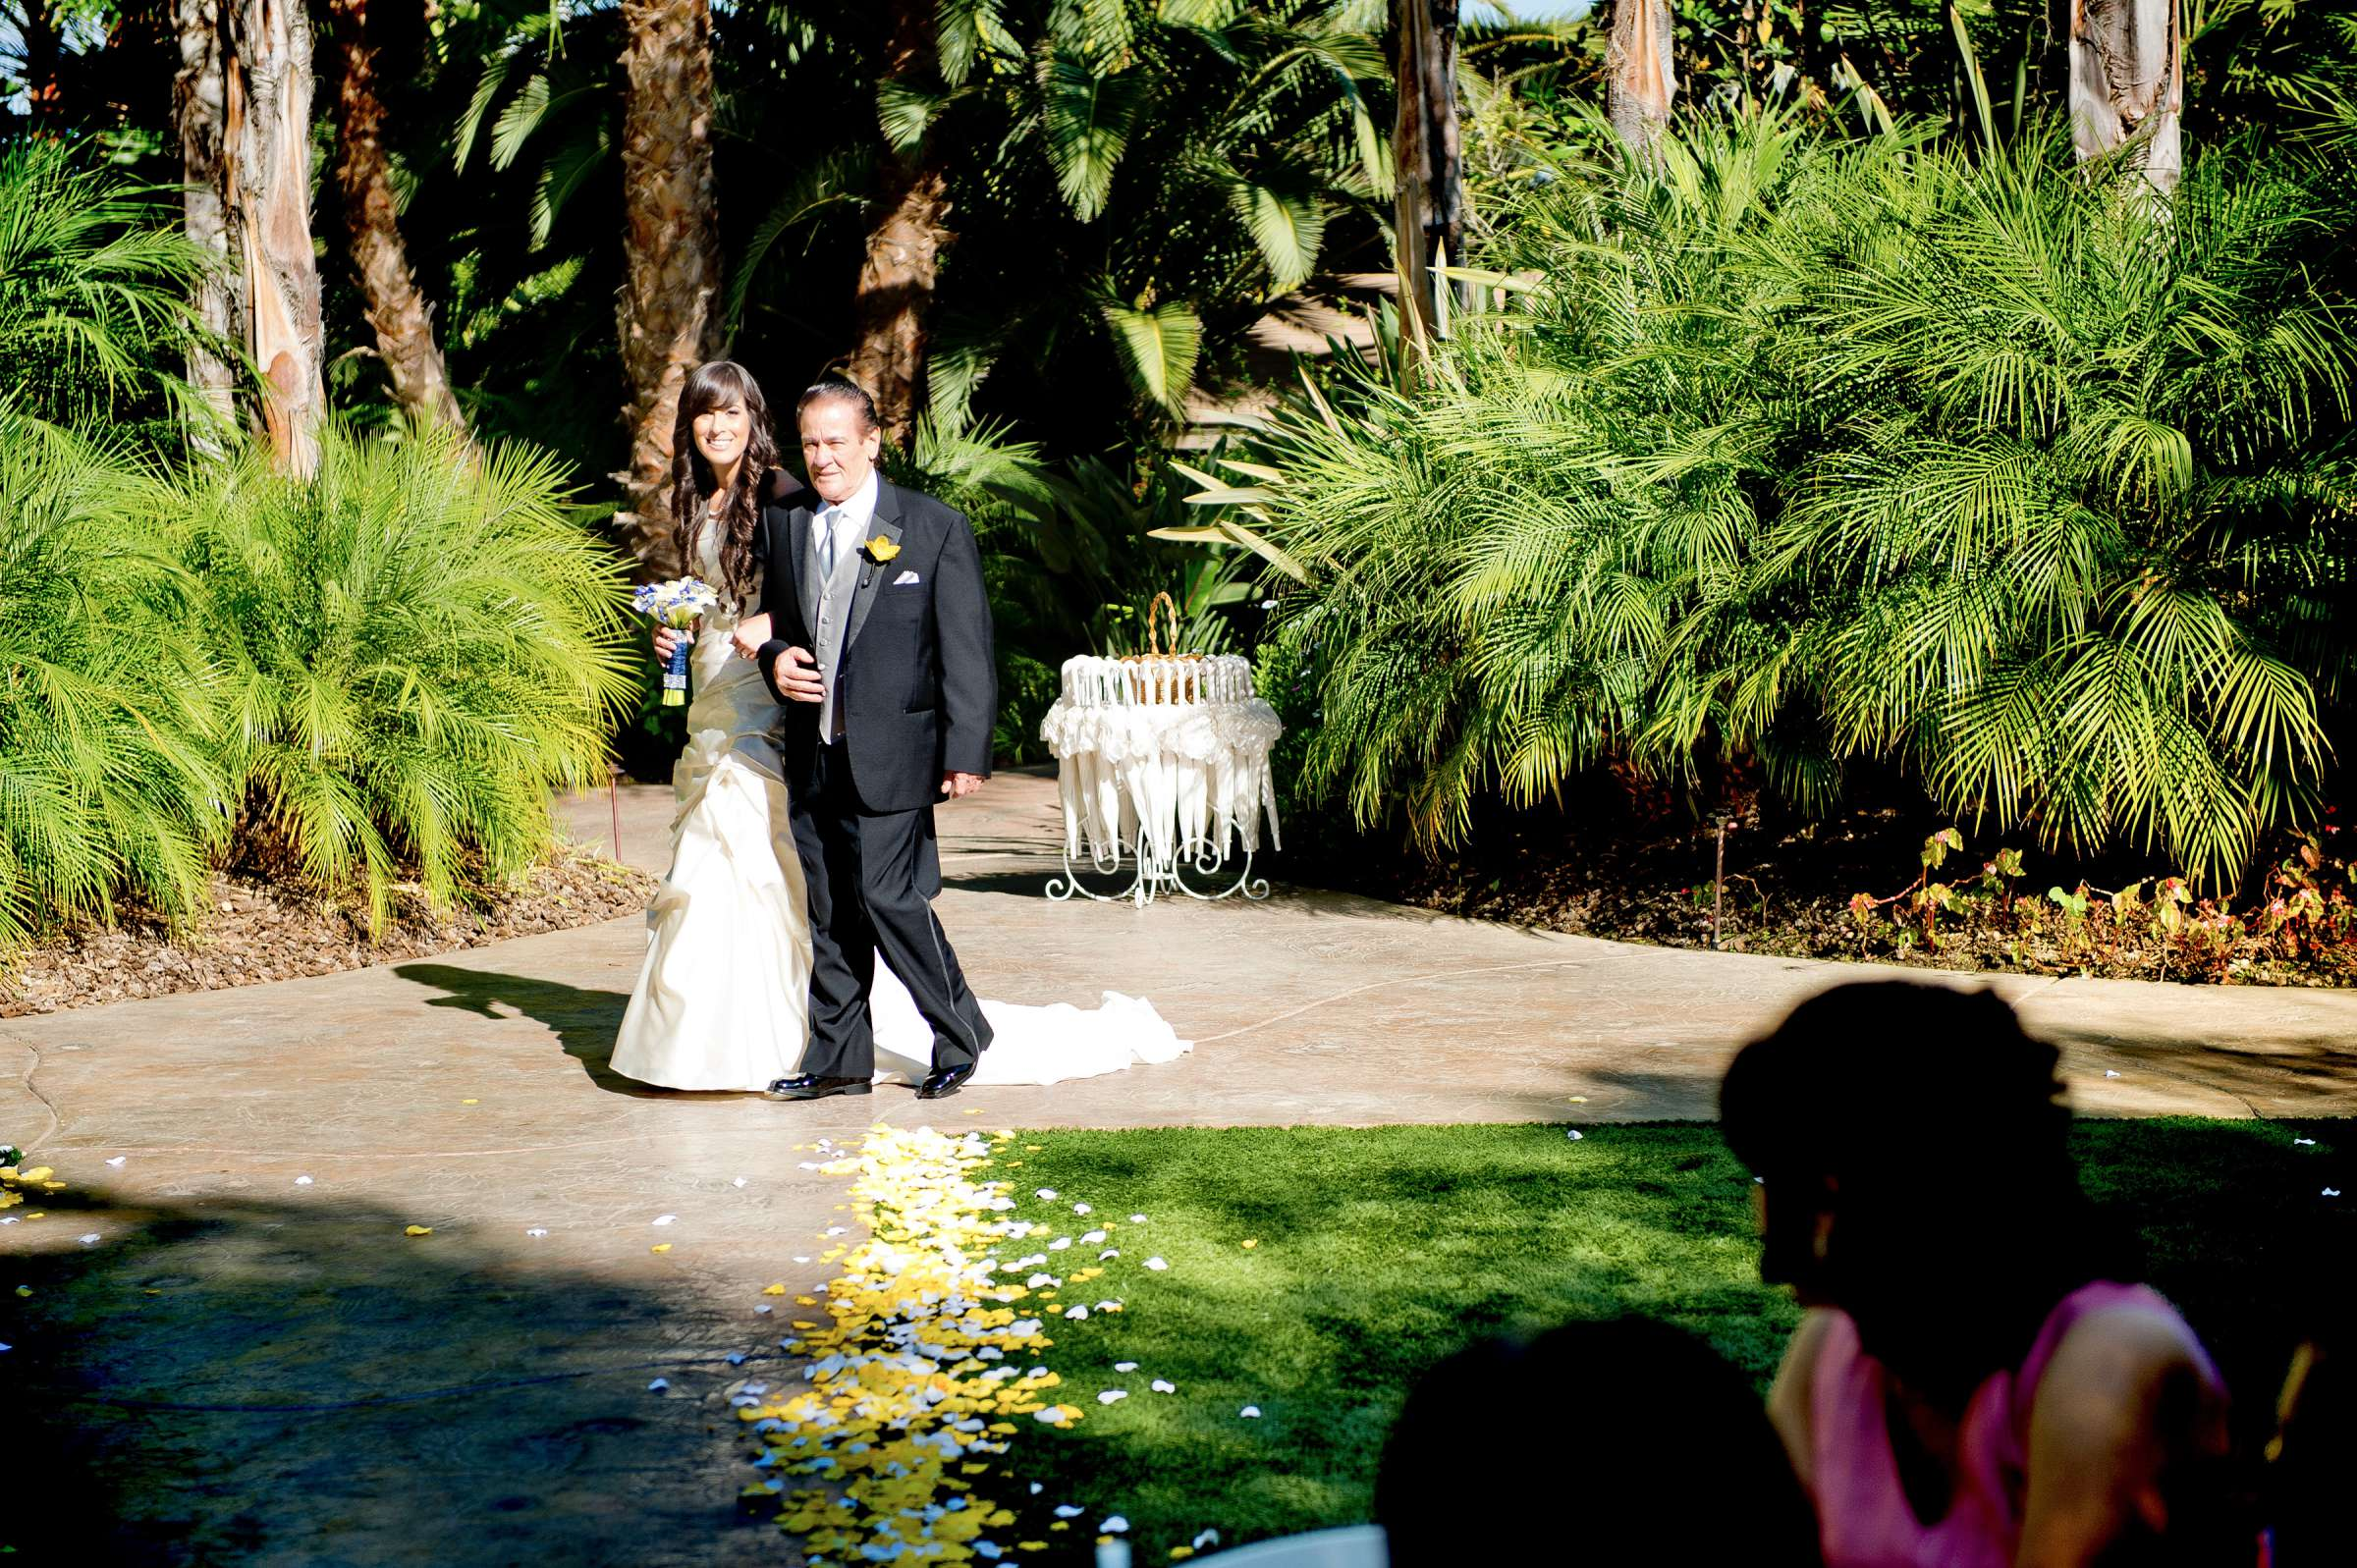 Grand Tradition Estate Wedding, Sharlene and Tony Wedding Photo #319485 by True Photography